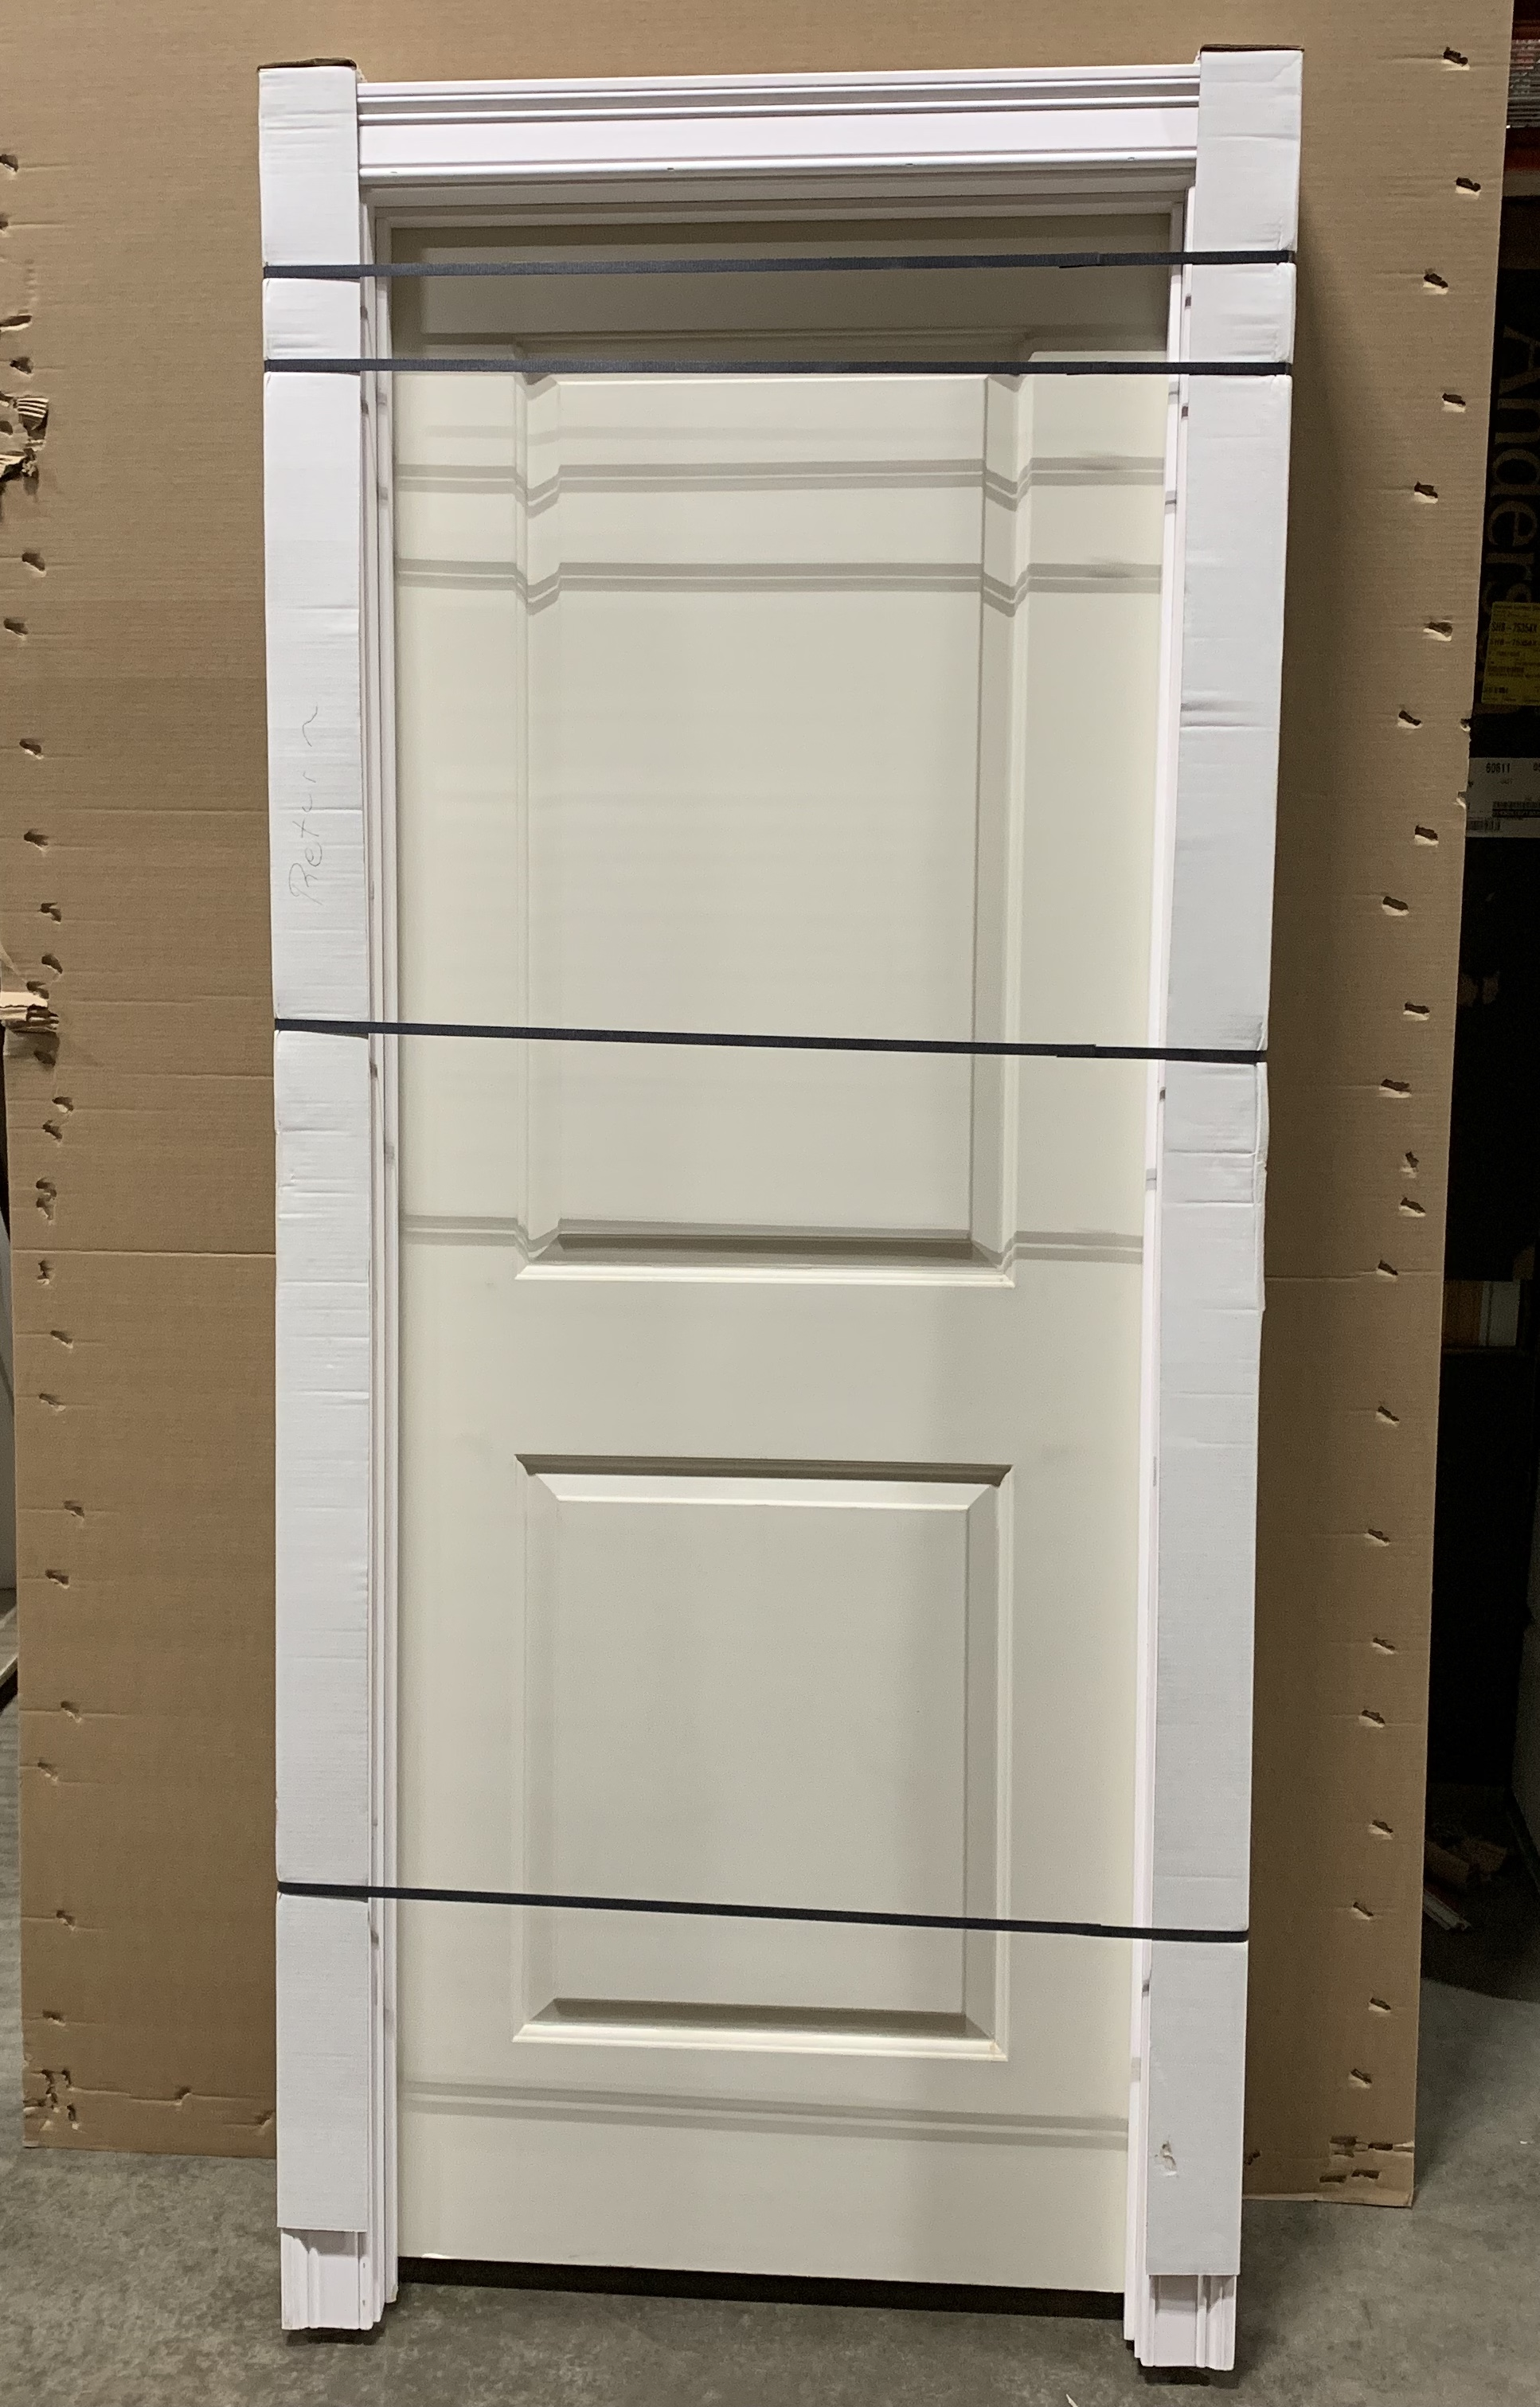 REEB 2668 Hollow Core Interior Single LH Door